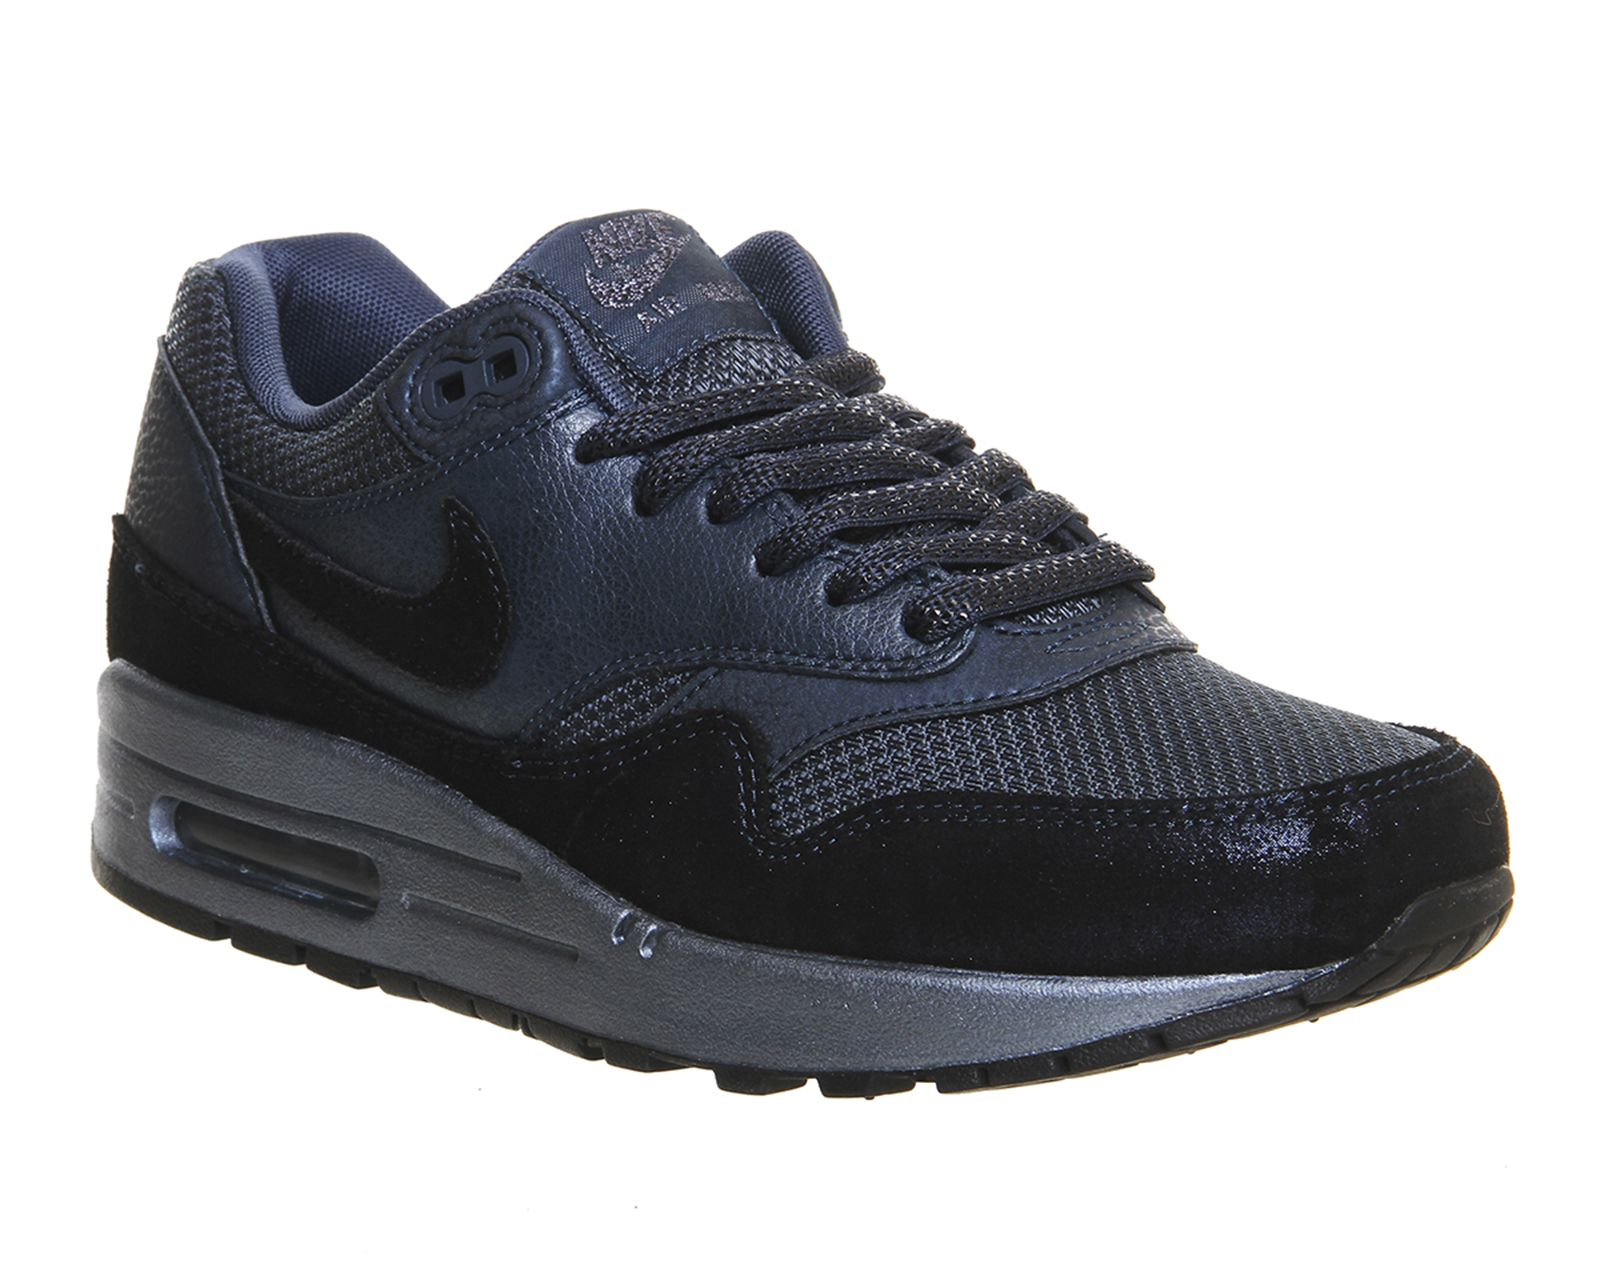 Buy Burnt Metal Blue Nike Air Max 1 (l) from OFFICE.co.uk